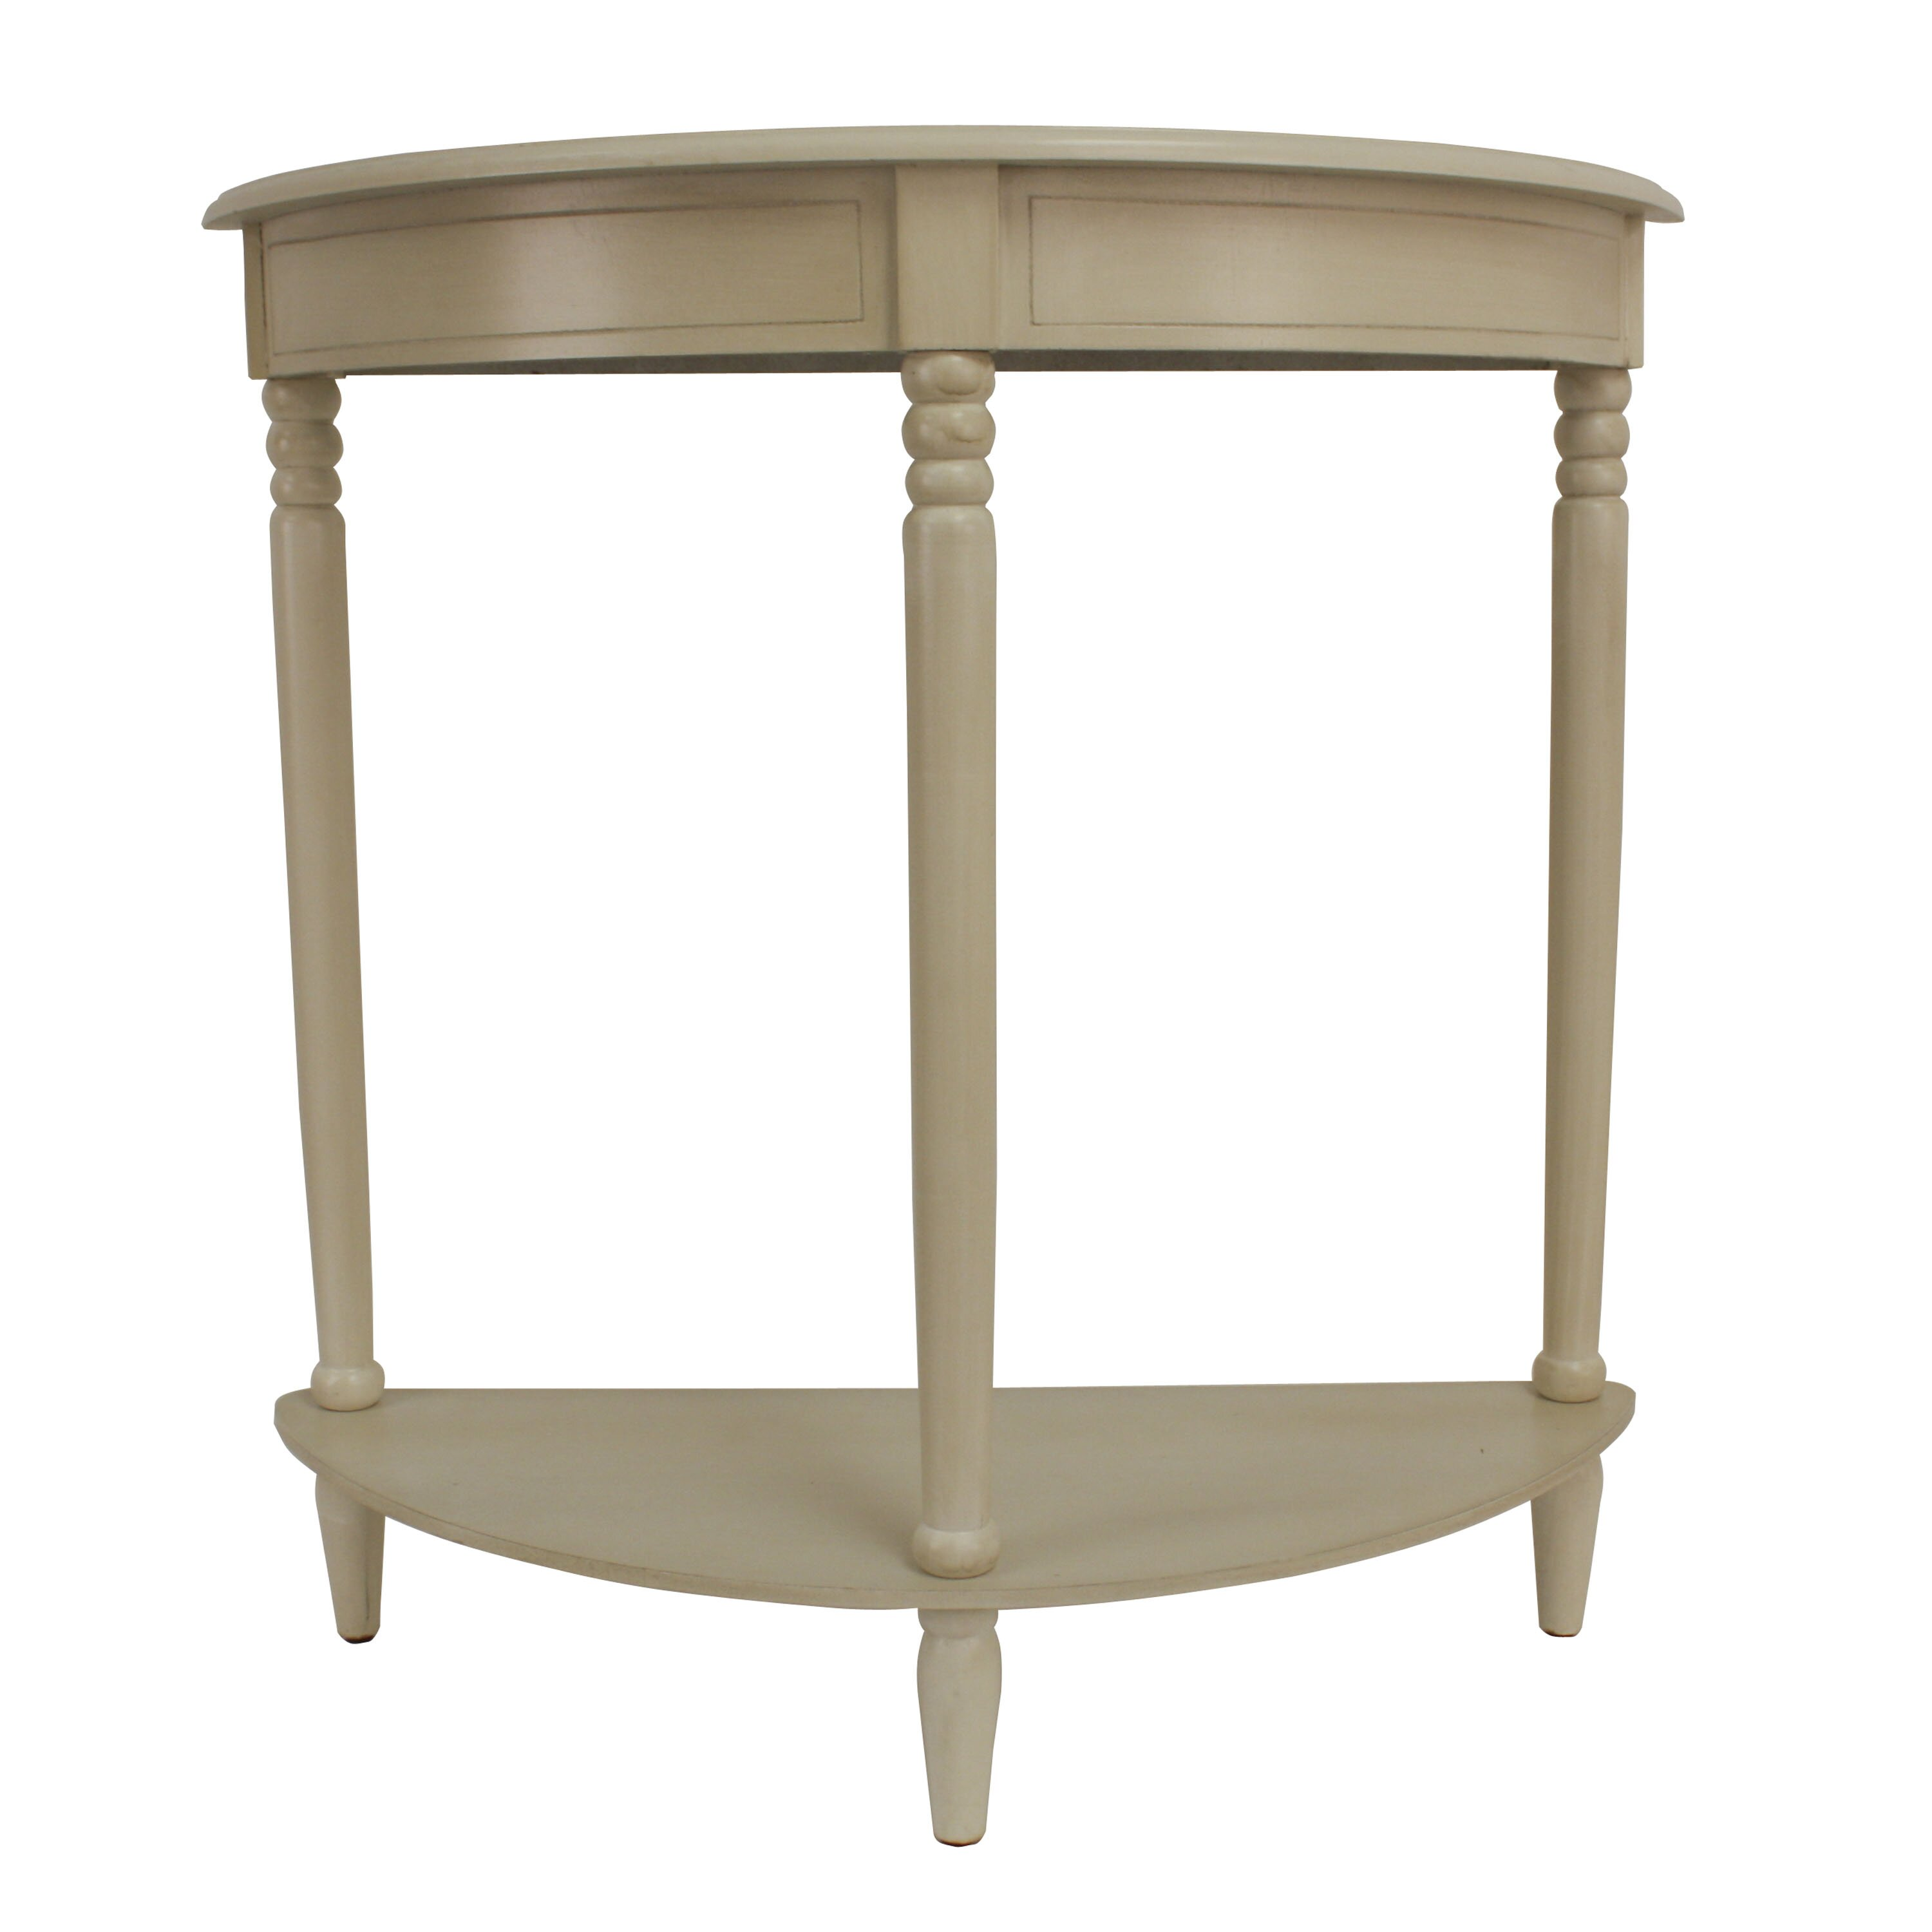 Decor therapy simplicity half moon console table reviews for Half moon console table